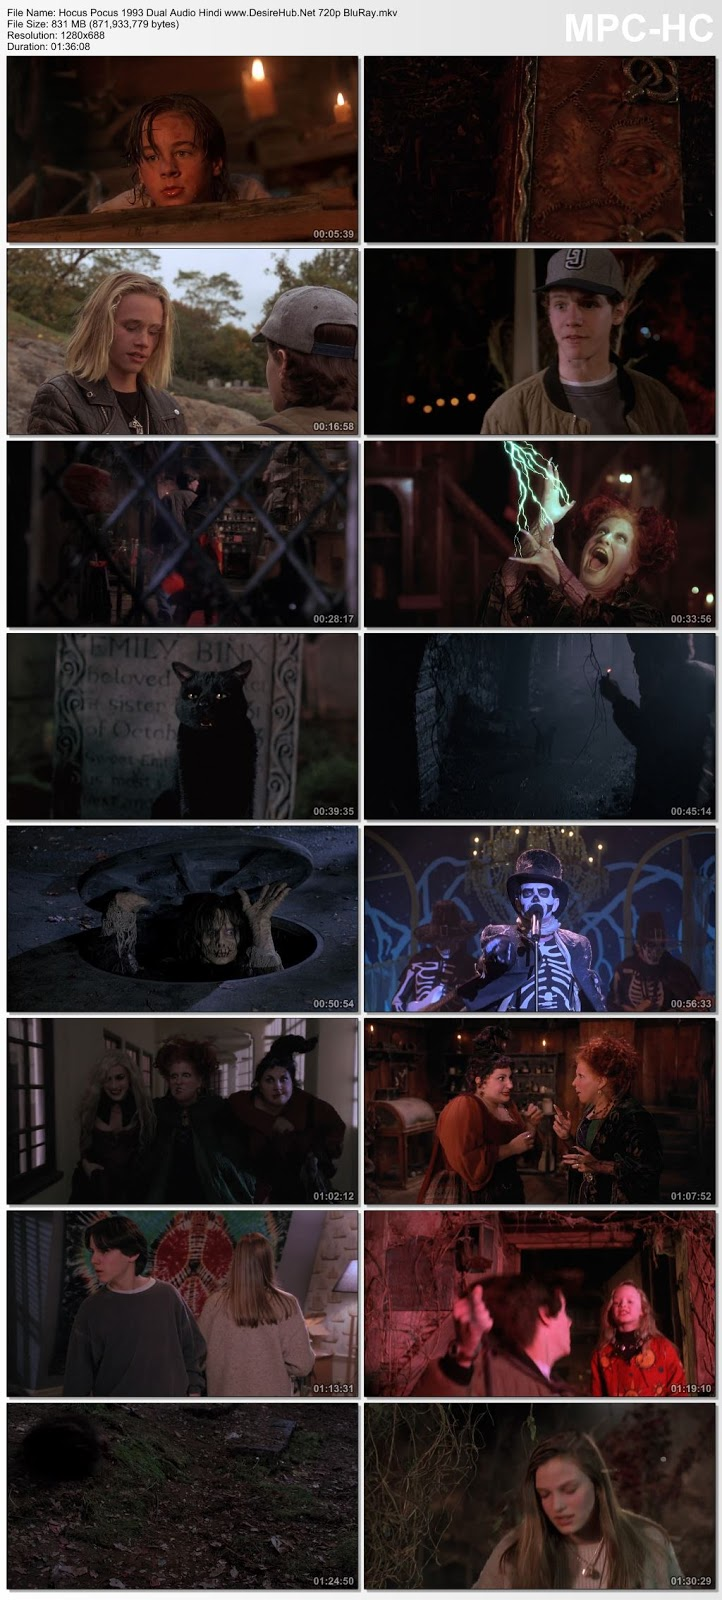 Hocus Pocus (1993) Dual Audio Hindi 480p BluRay 300MB Desirehub